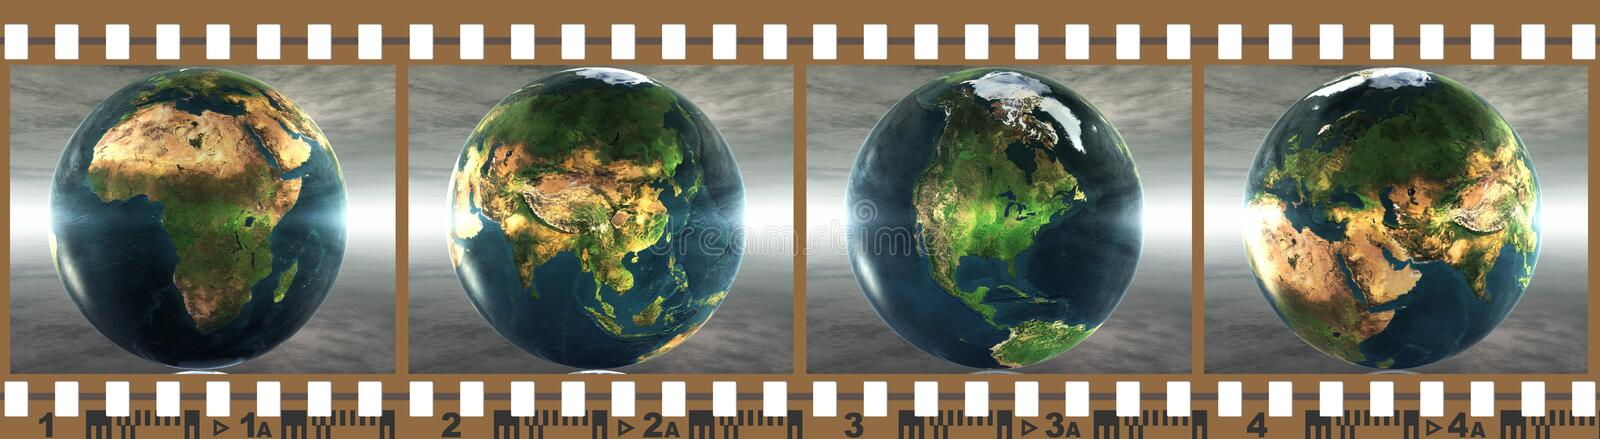 Download Film With 4 Images Of The Earth Stock Illustration - Illustration of images, border: 12035498